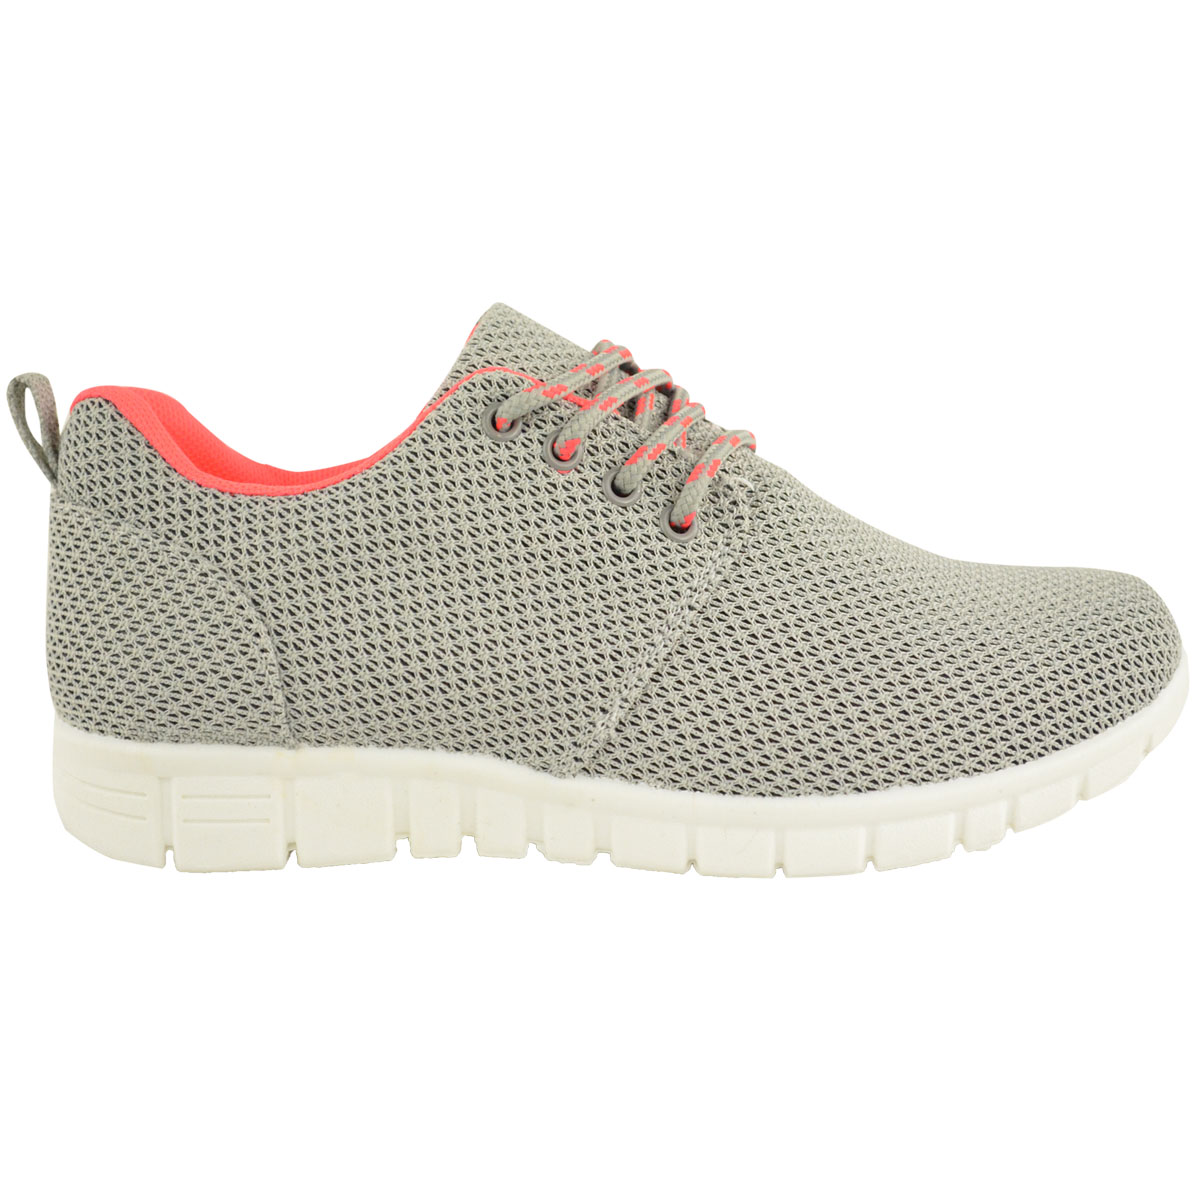 Women's Mesh Shoes